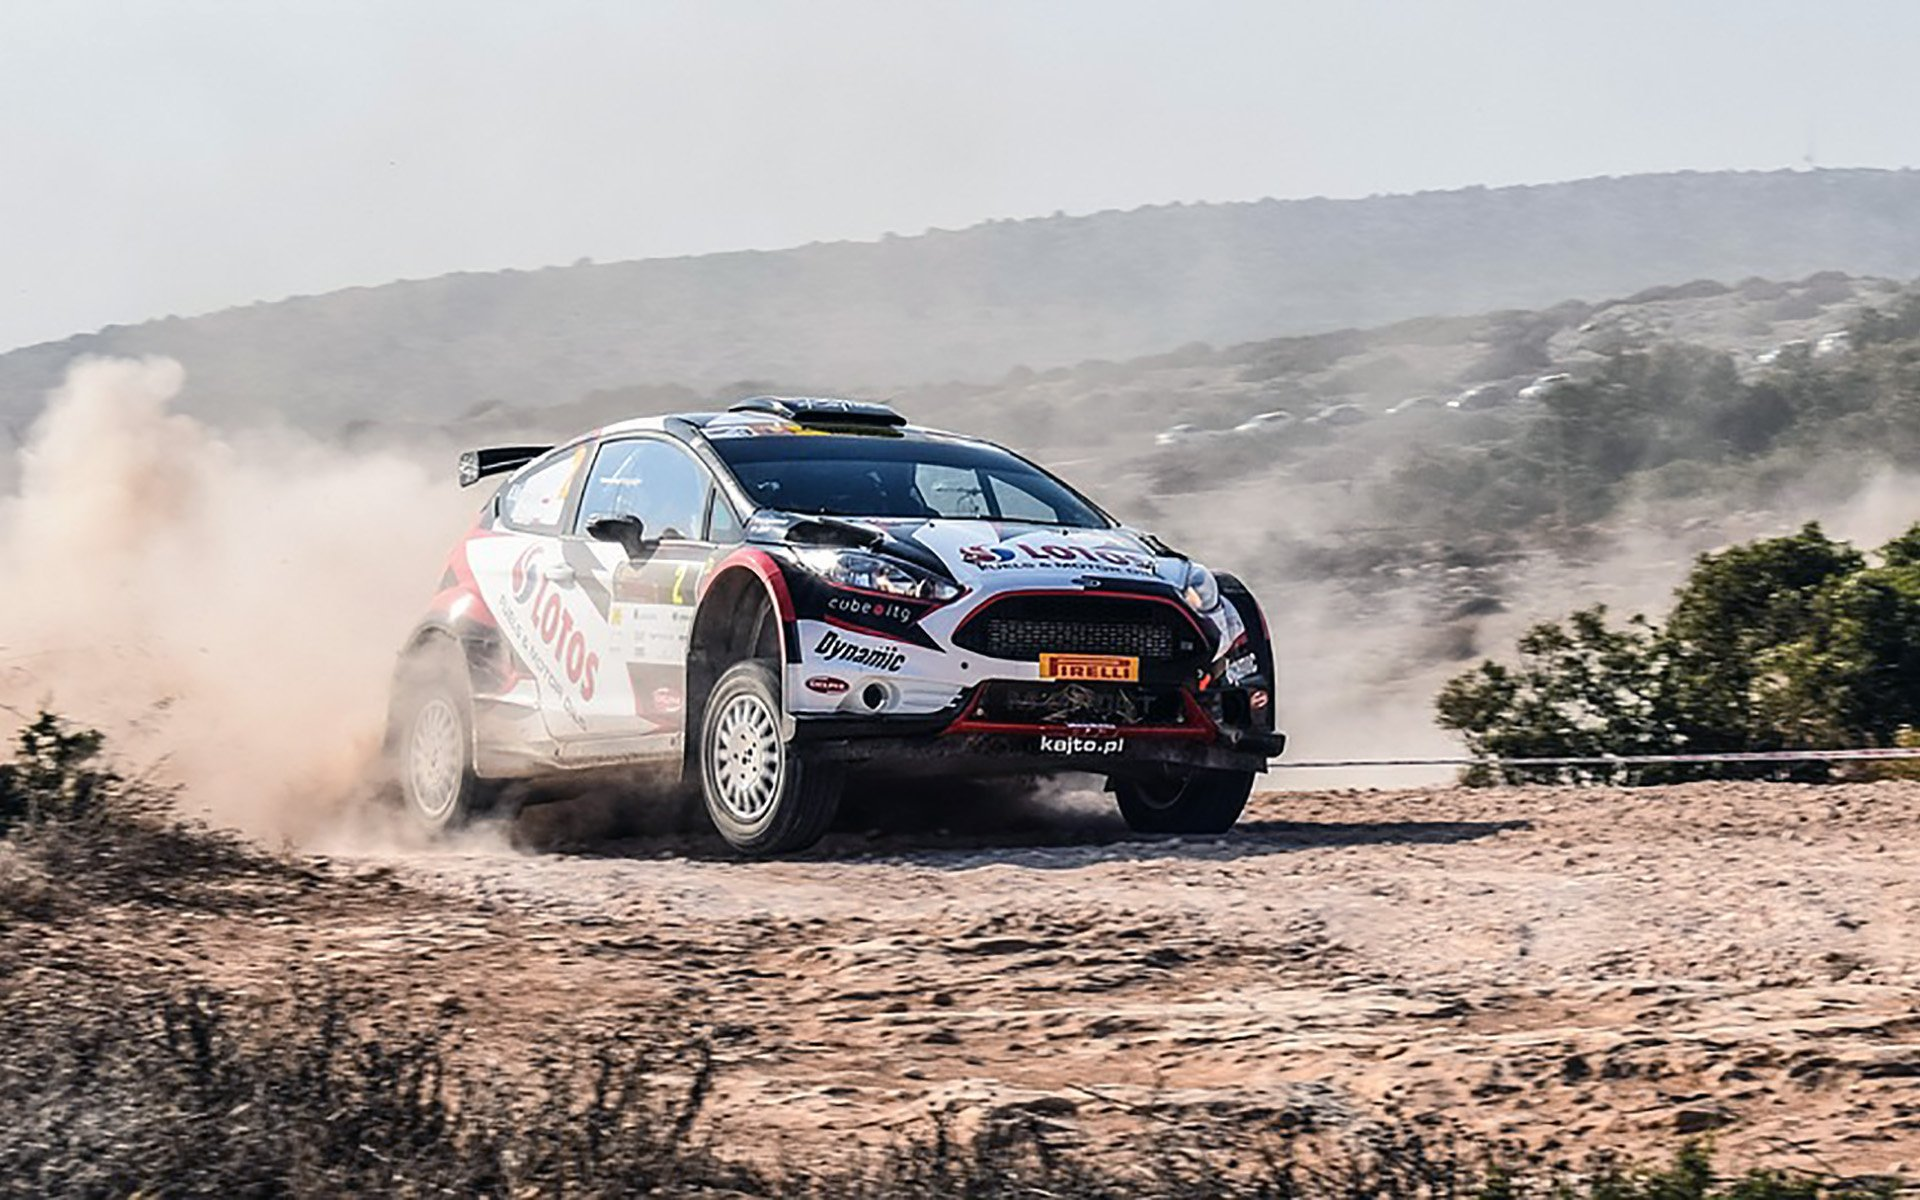 The legendary WRC Safari Rally is coming back to Kenya in 2020 and as preparations are underway what does it all mean? Will the magic still be there?